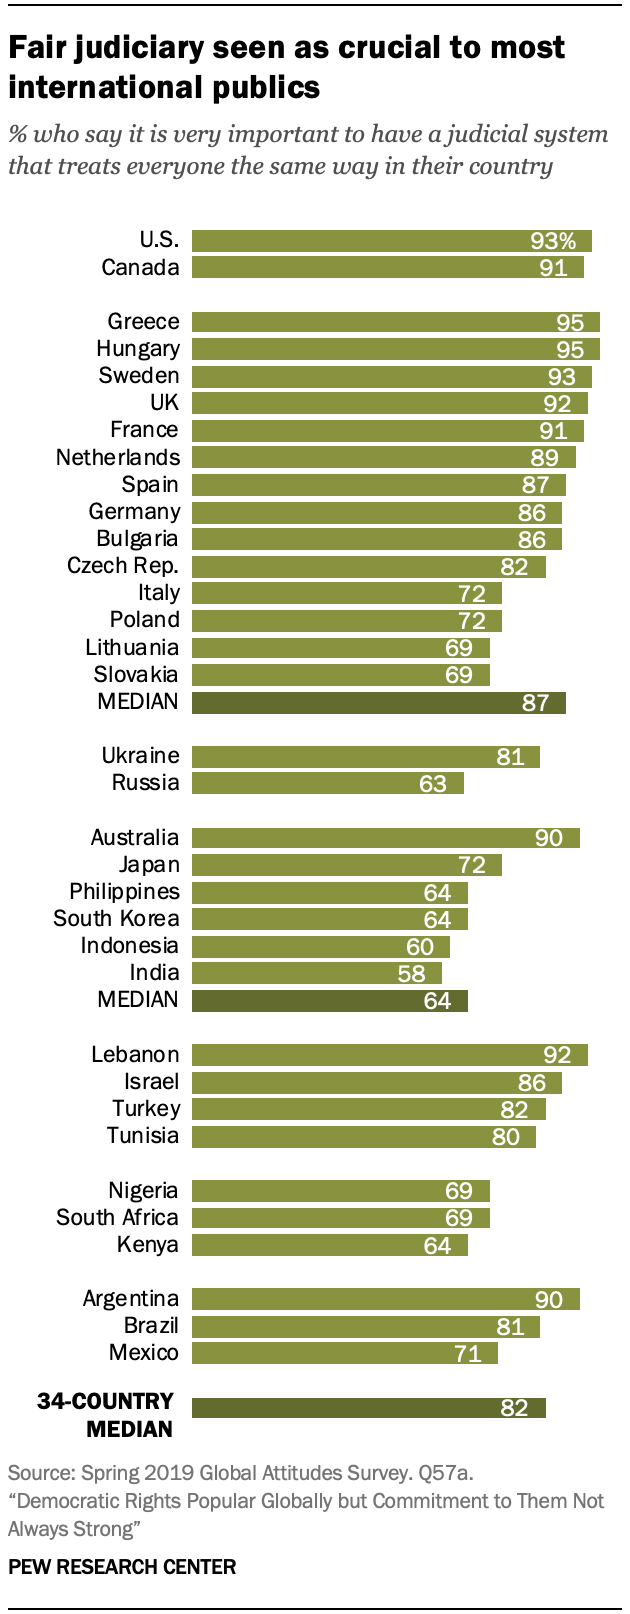 Chart shows fair judiciary seen as crucial to most international publics